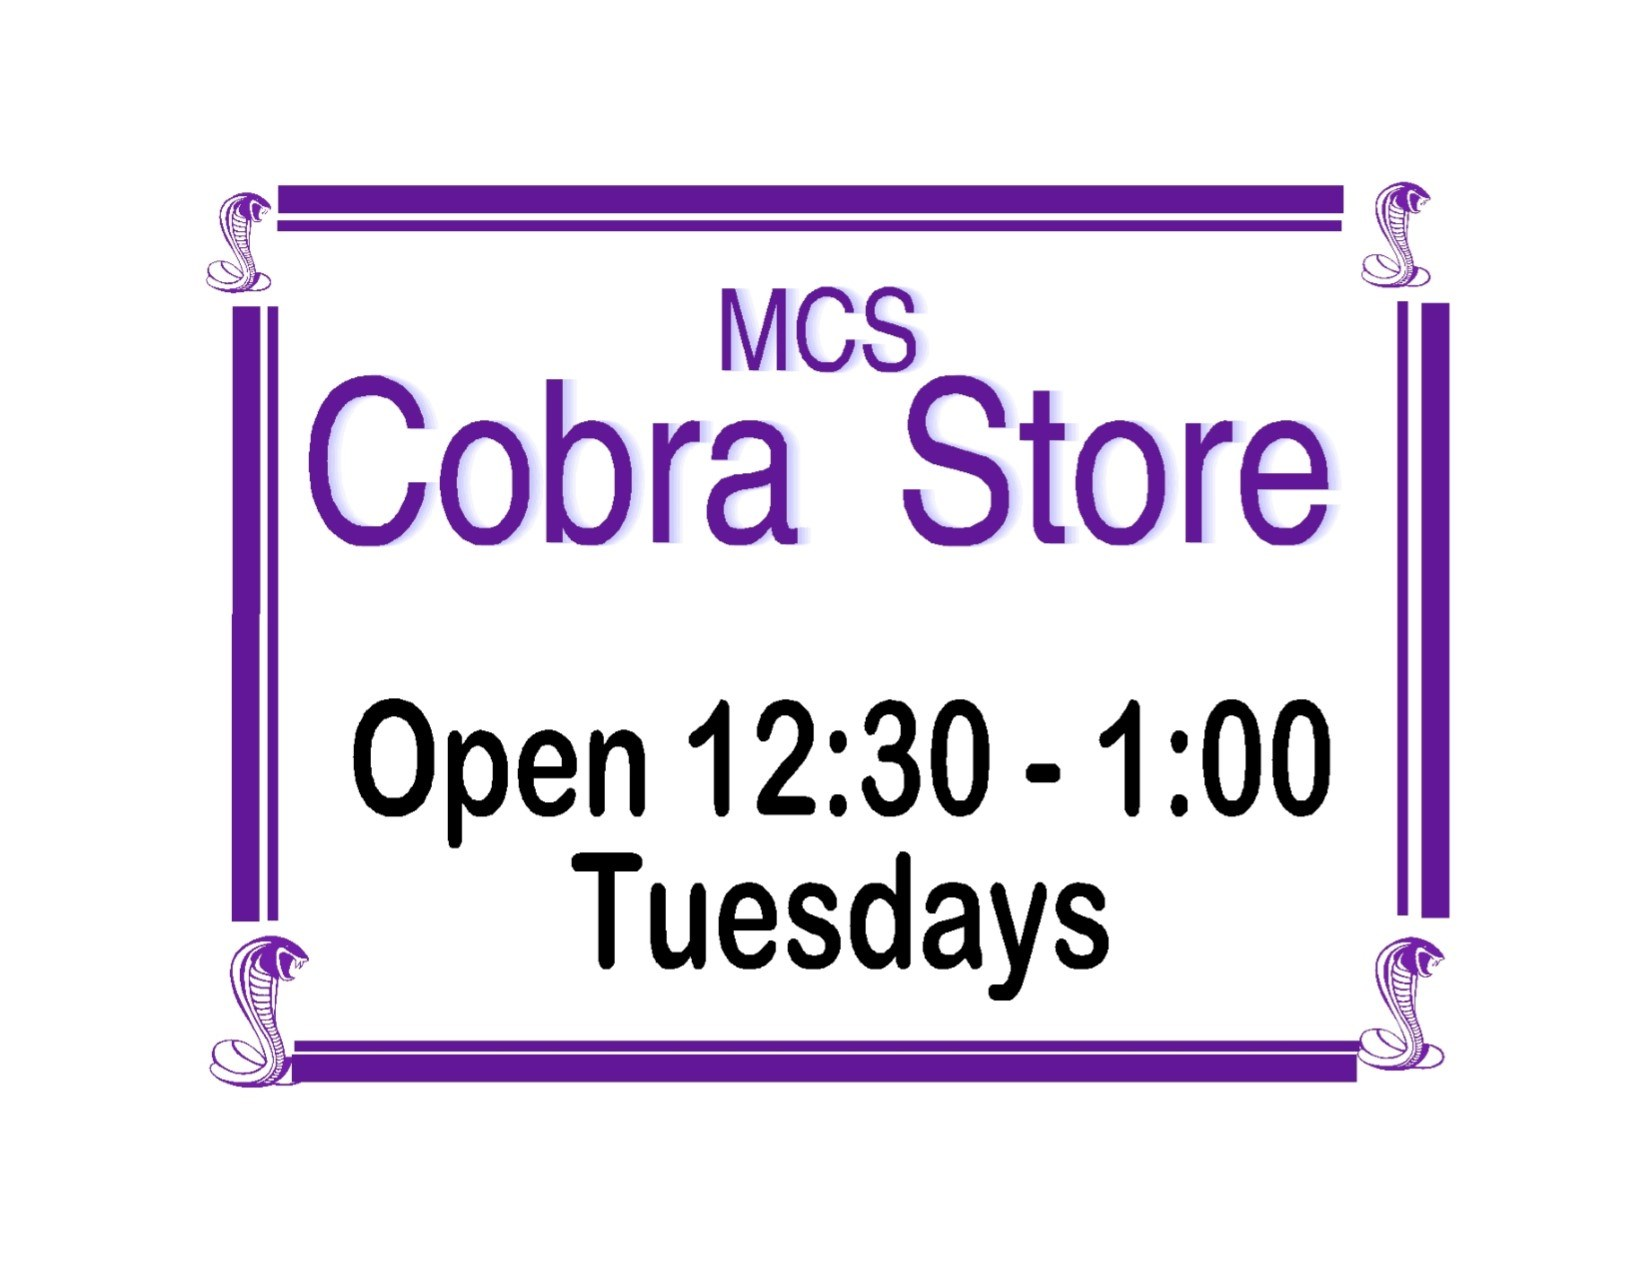 cobra store feb 2018 web site.jpg